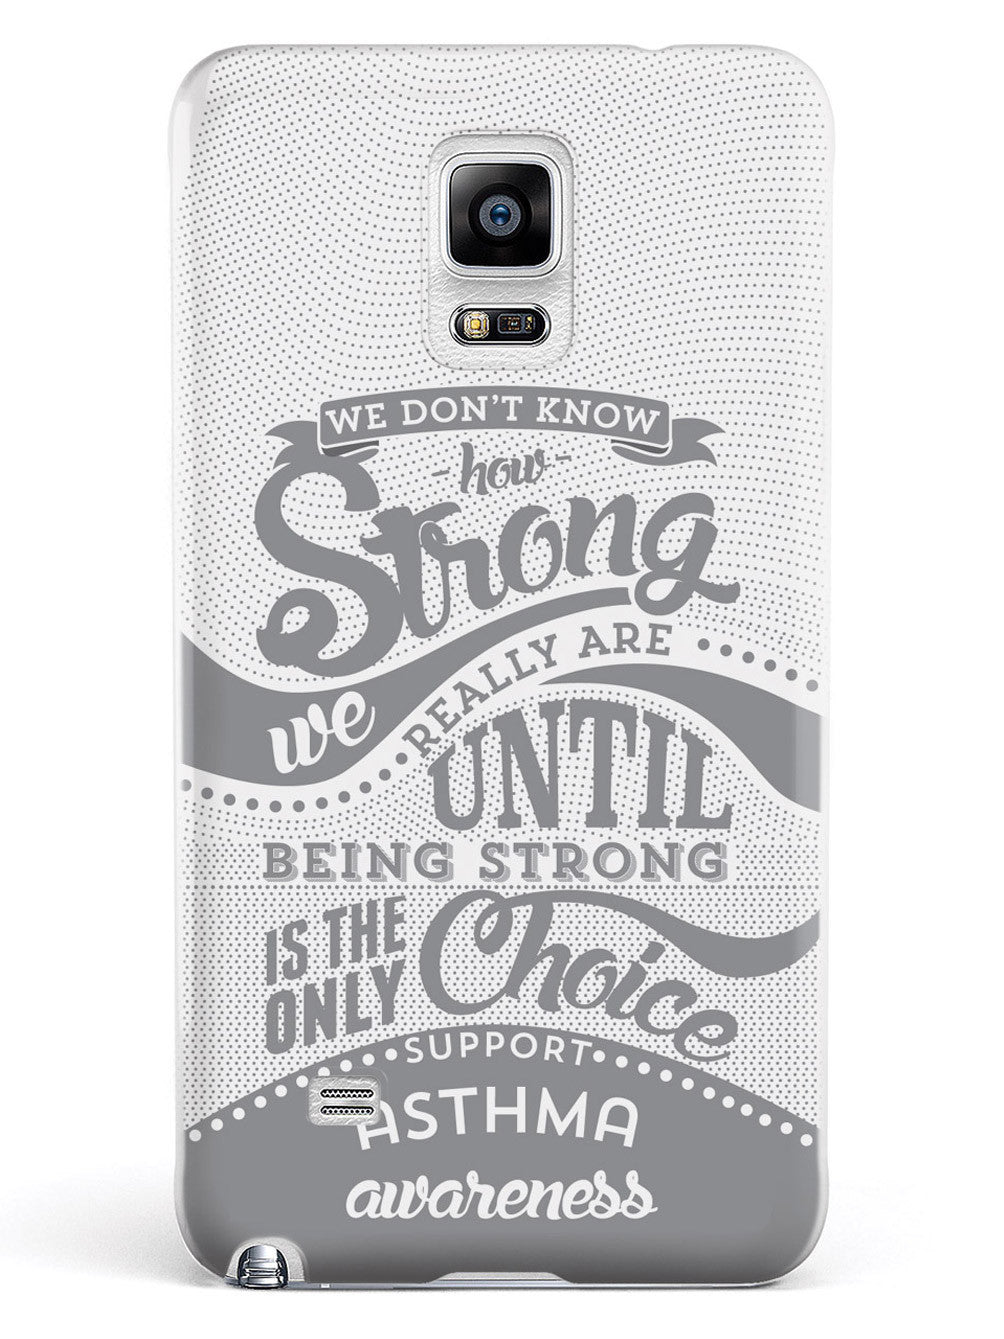 How Strong - Asthma Awareness Case